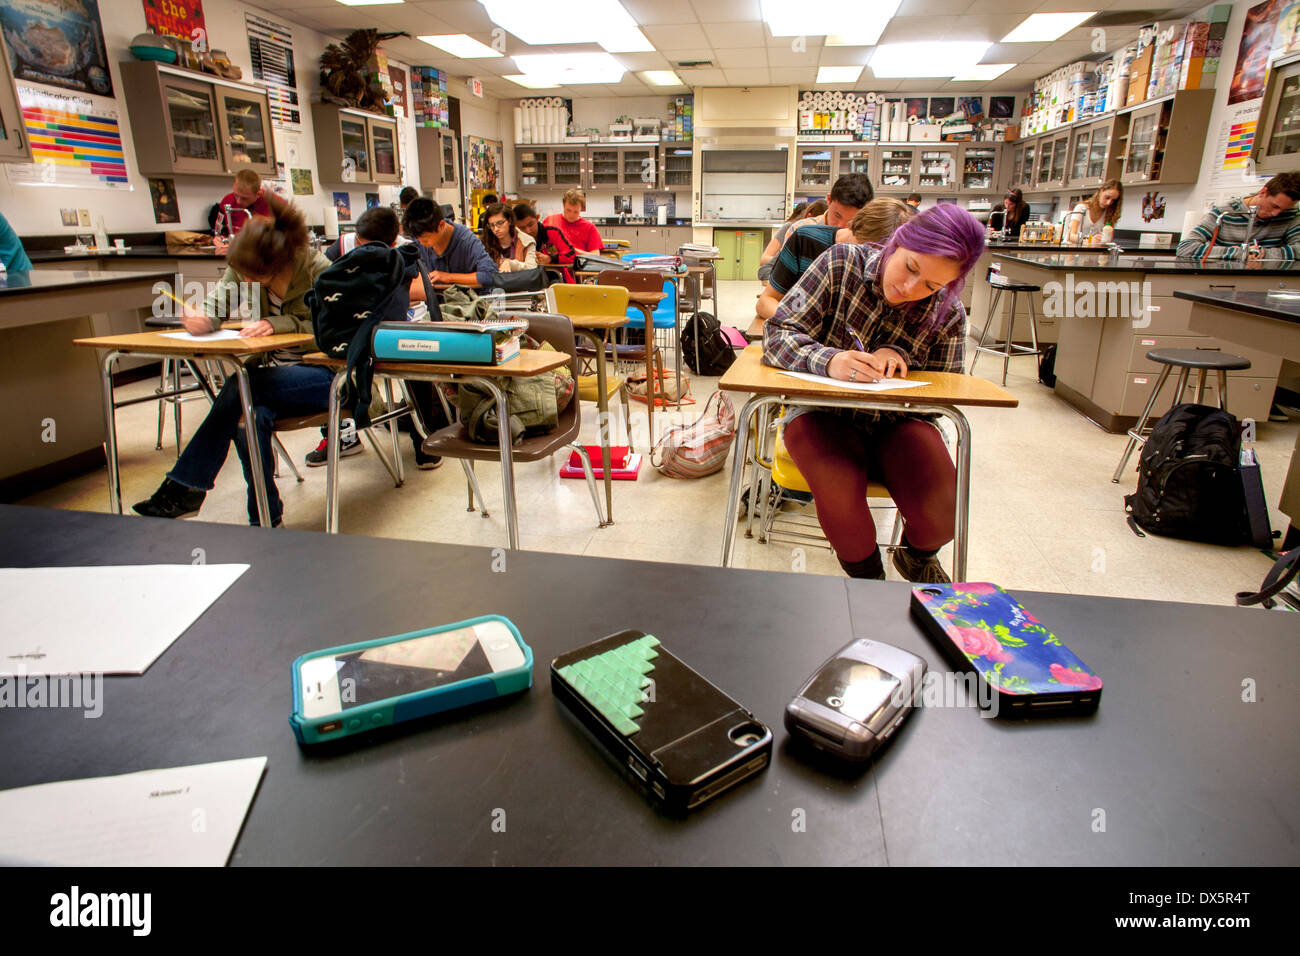 Teen high school chemistry students place their cell phones on the teacher's desk to avoid distraction while taking a classroom examination in San Clemente, CA. - Stock Image